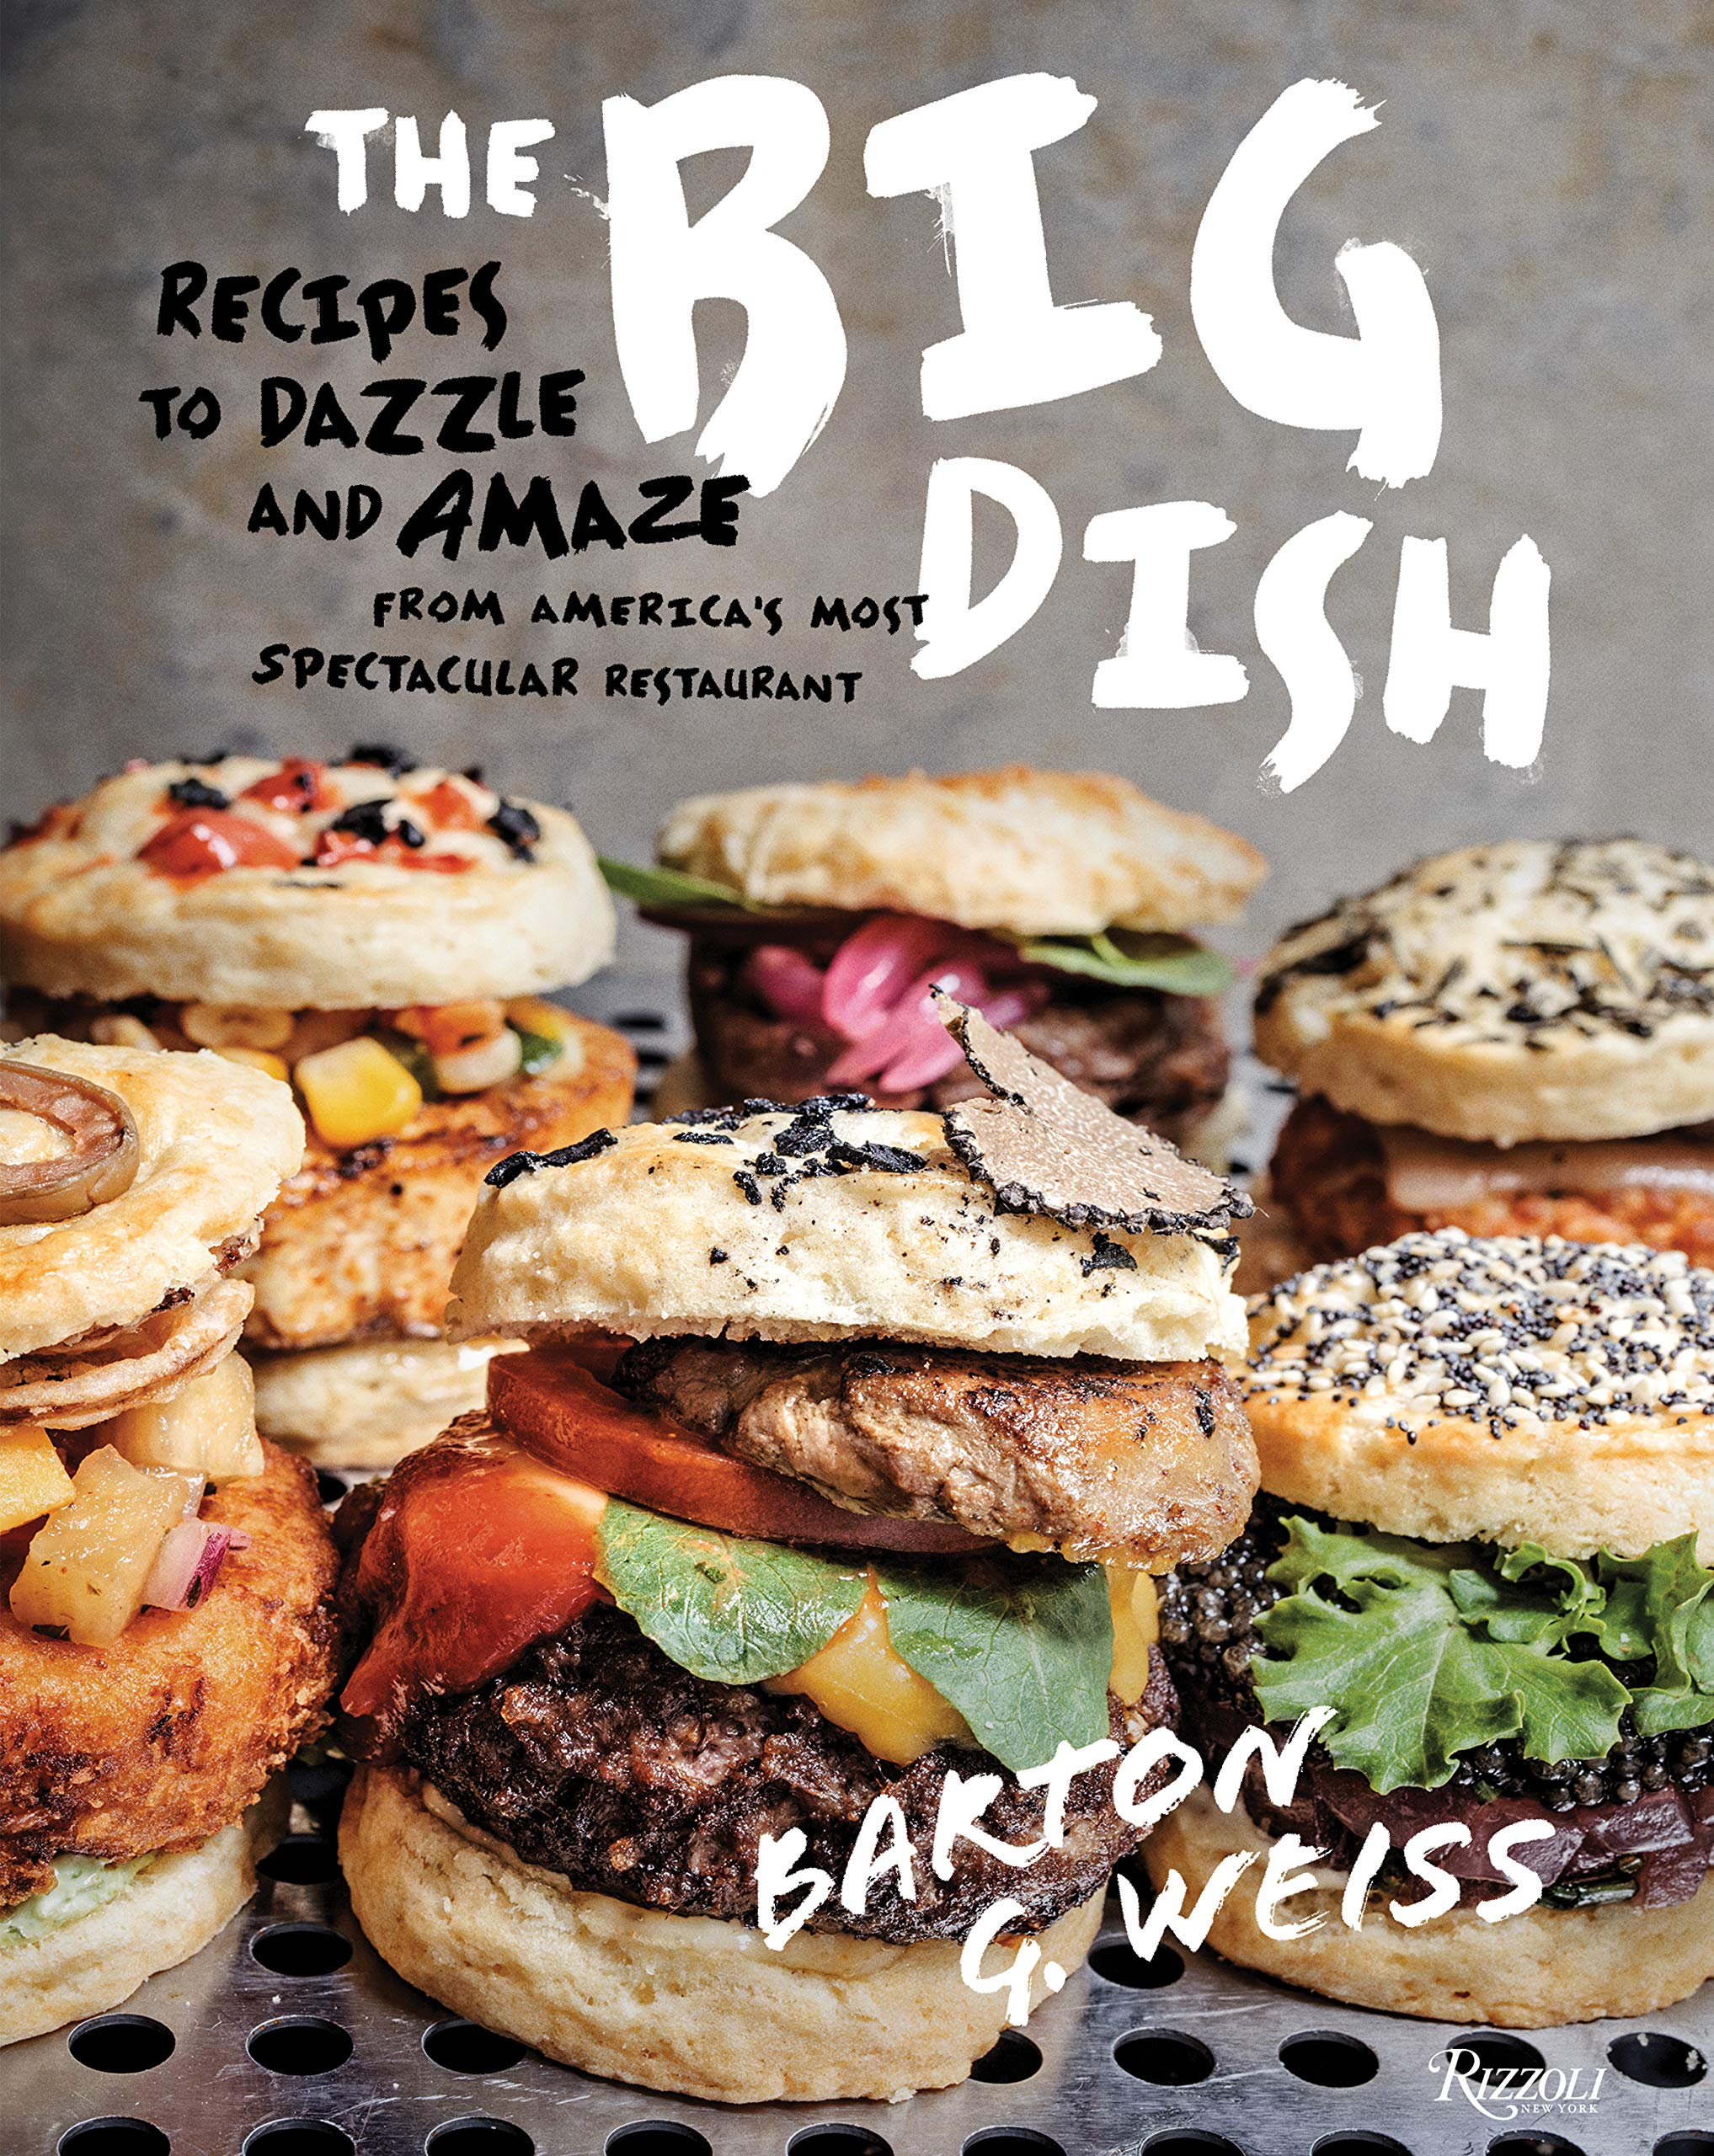 The Big Dish: Recipes to Dazzle and Amaze from America's Most Spectacular Restaurant